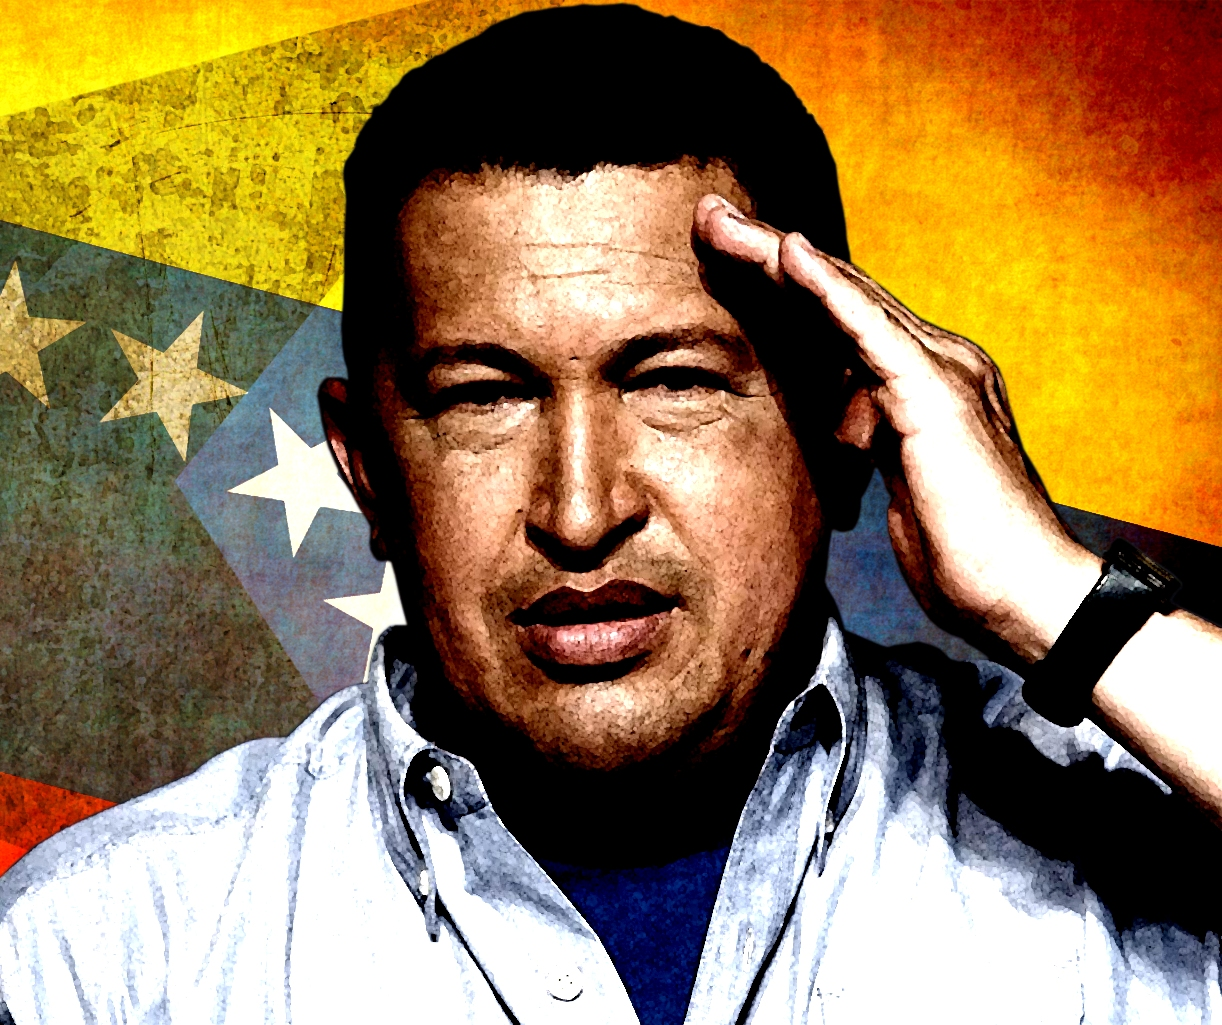 Hugo Chavez was a figure that had the neoliberals of the world worried. He led a democratic sweep of changes across his country, appropriating businesses, ... - hugo_chavez_by_drunah-d5x66cl